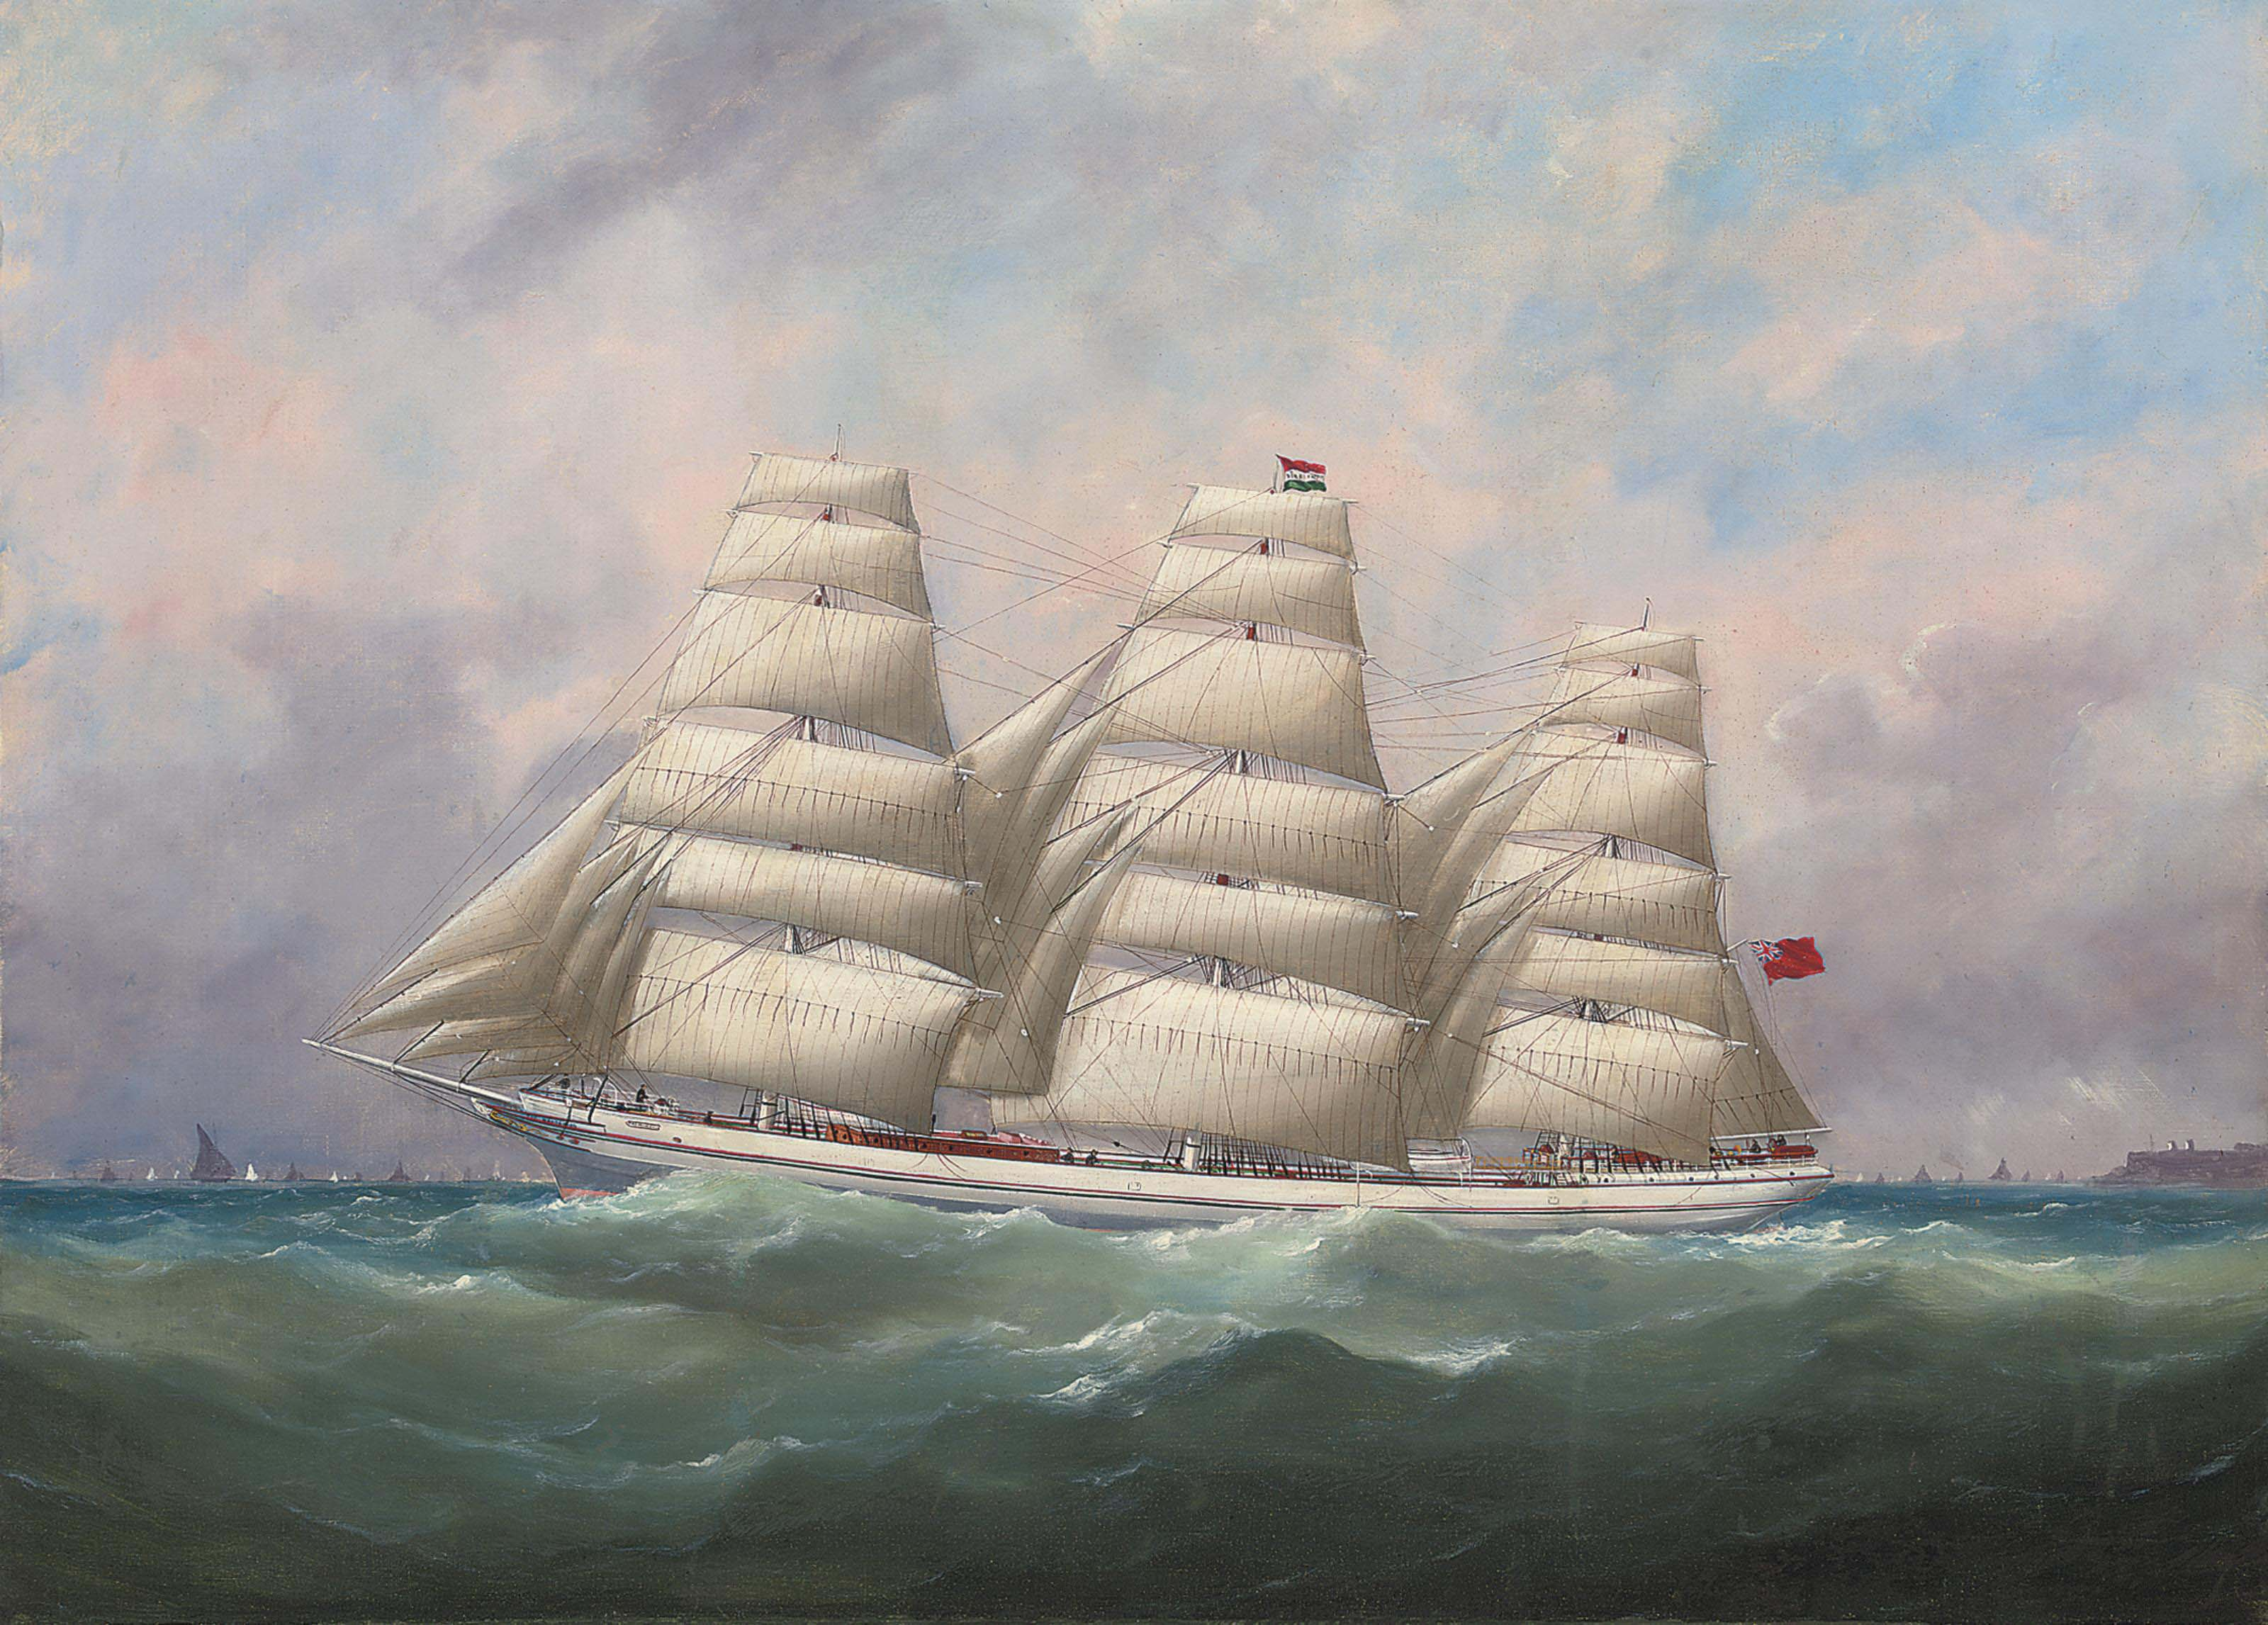 The three-master Hahnemann in full sail off a headland